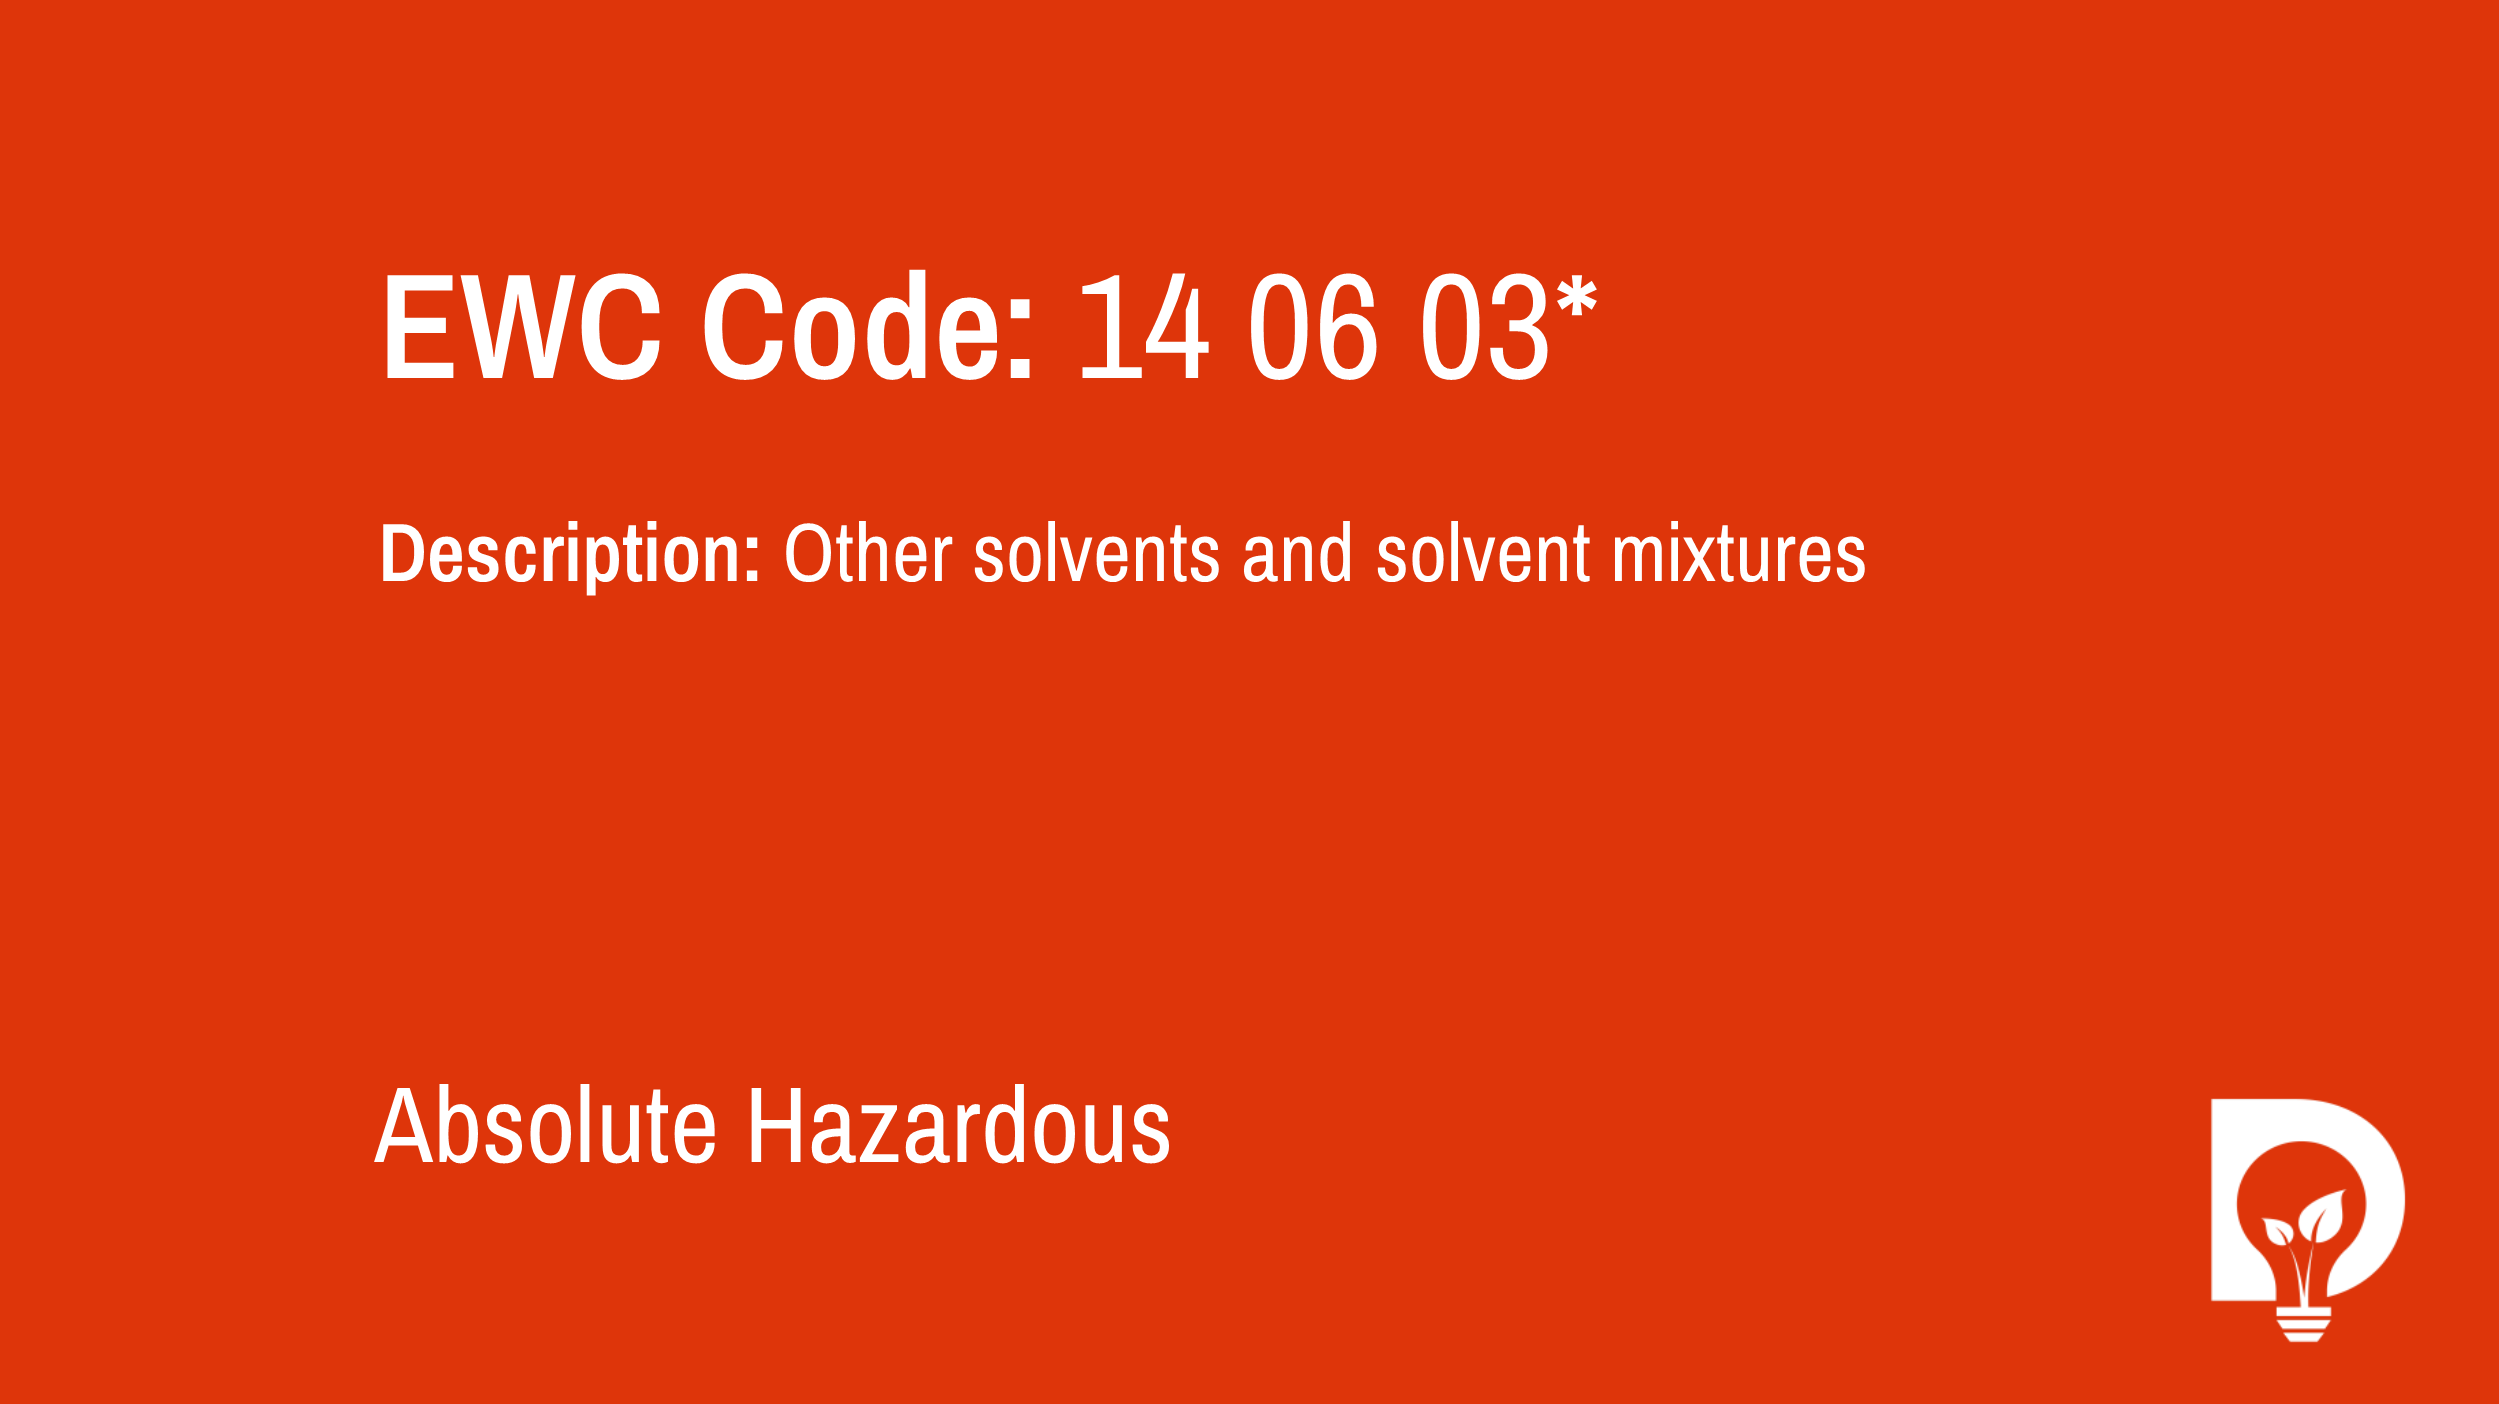 EWC Code: 14 06 03* | other solvents and solvent mixtures